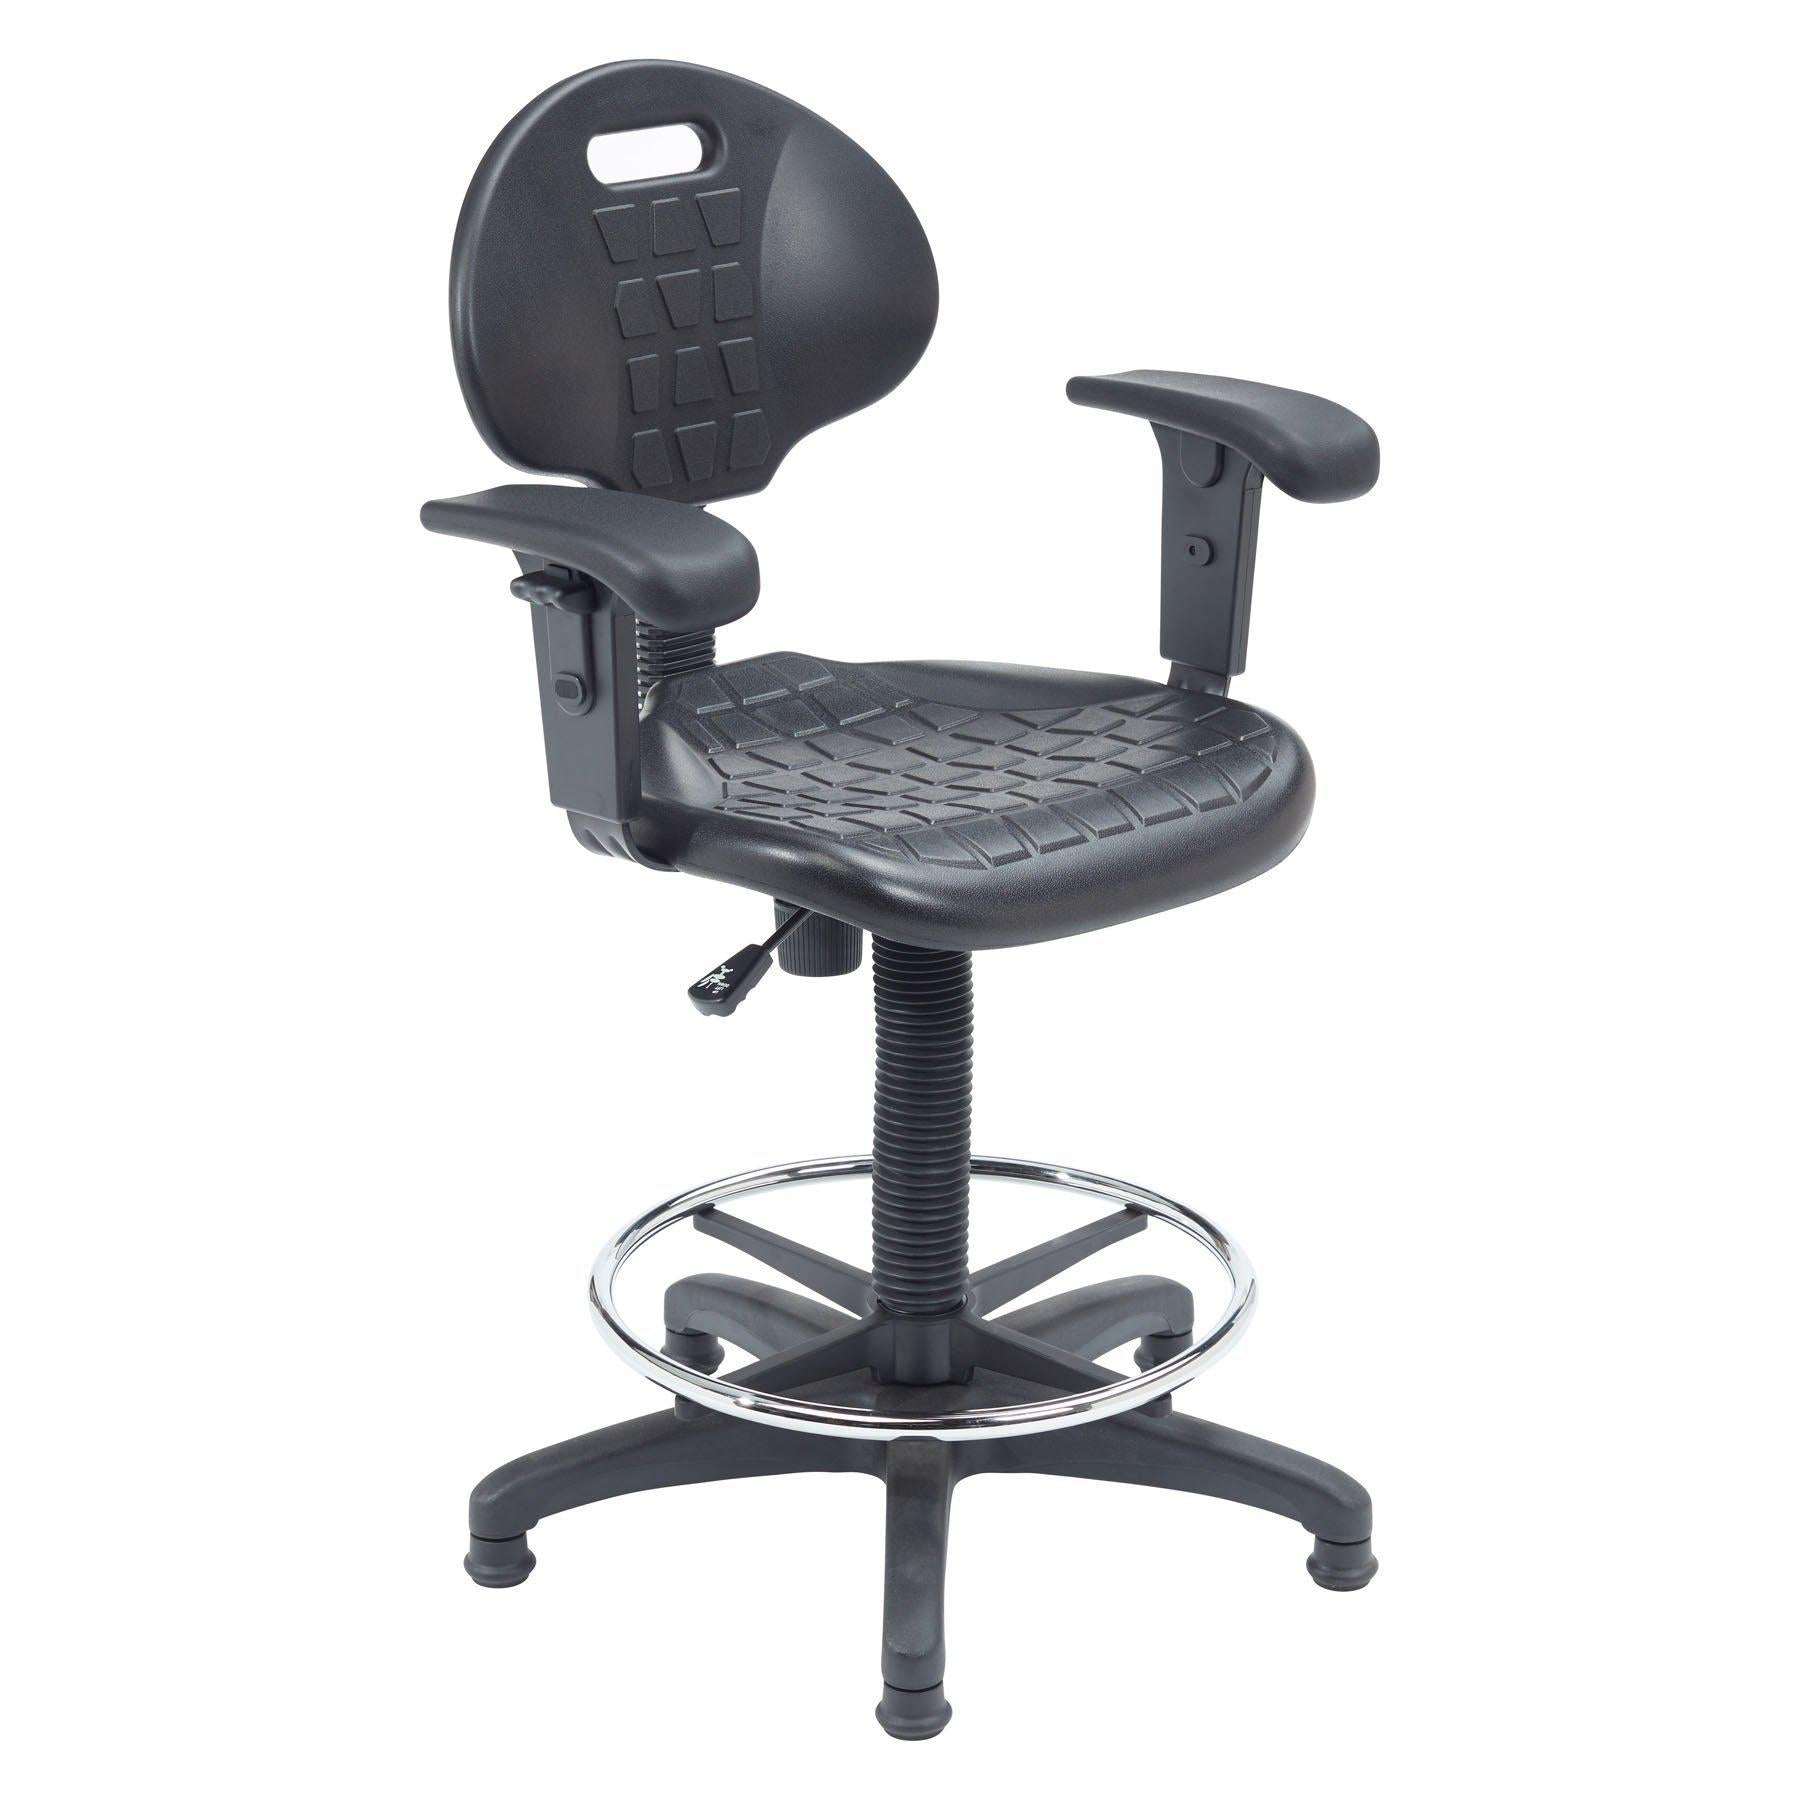 Kangaroo Stool with Arms, Polyurethane Seat and Backrest, Black-Stools-